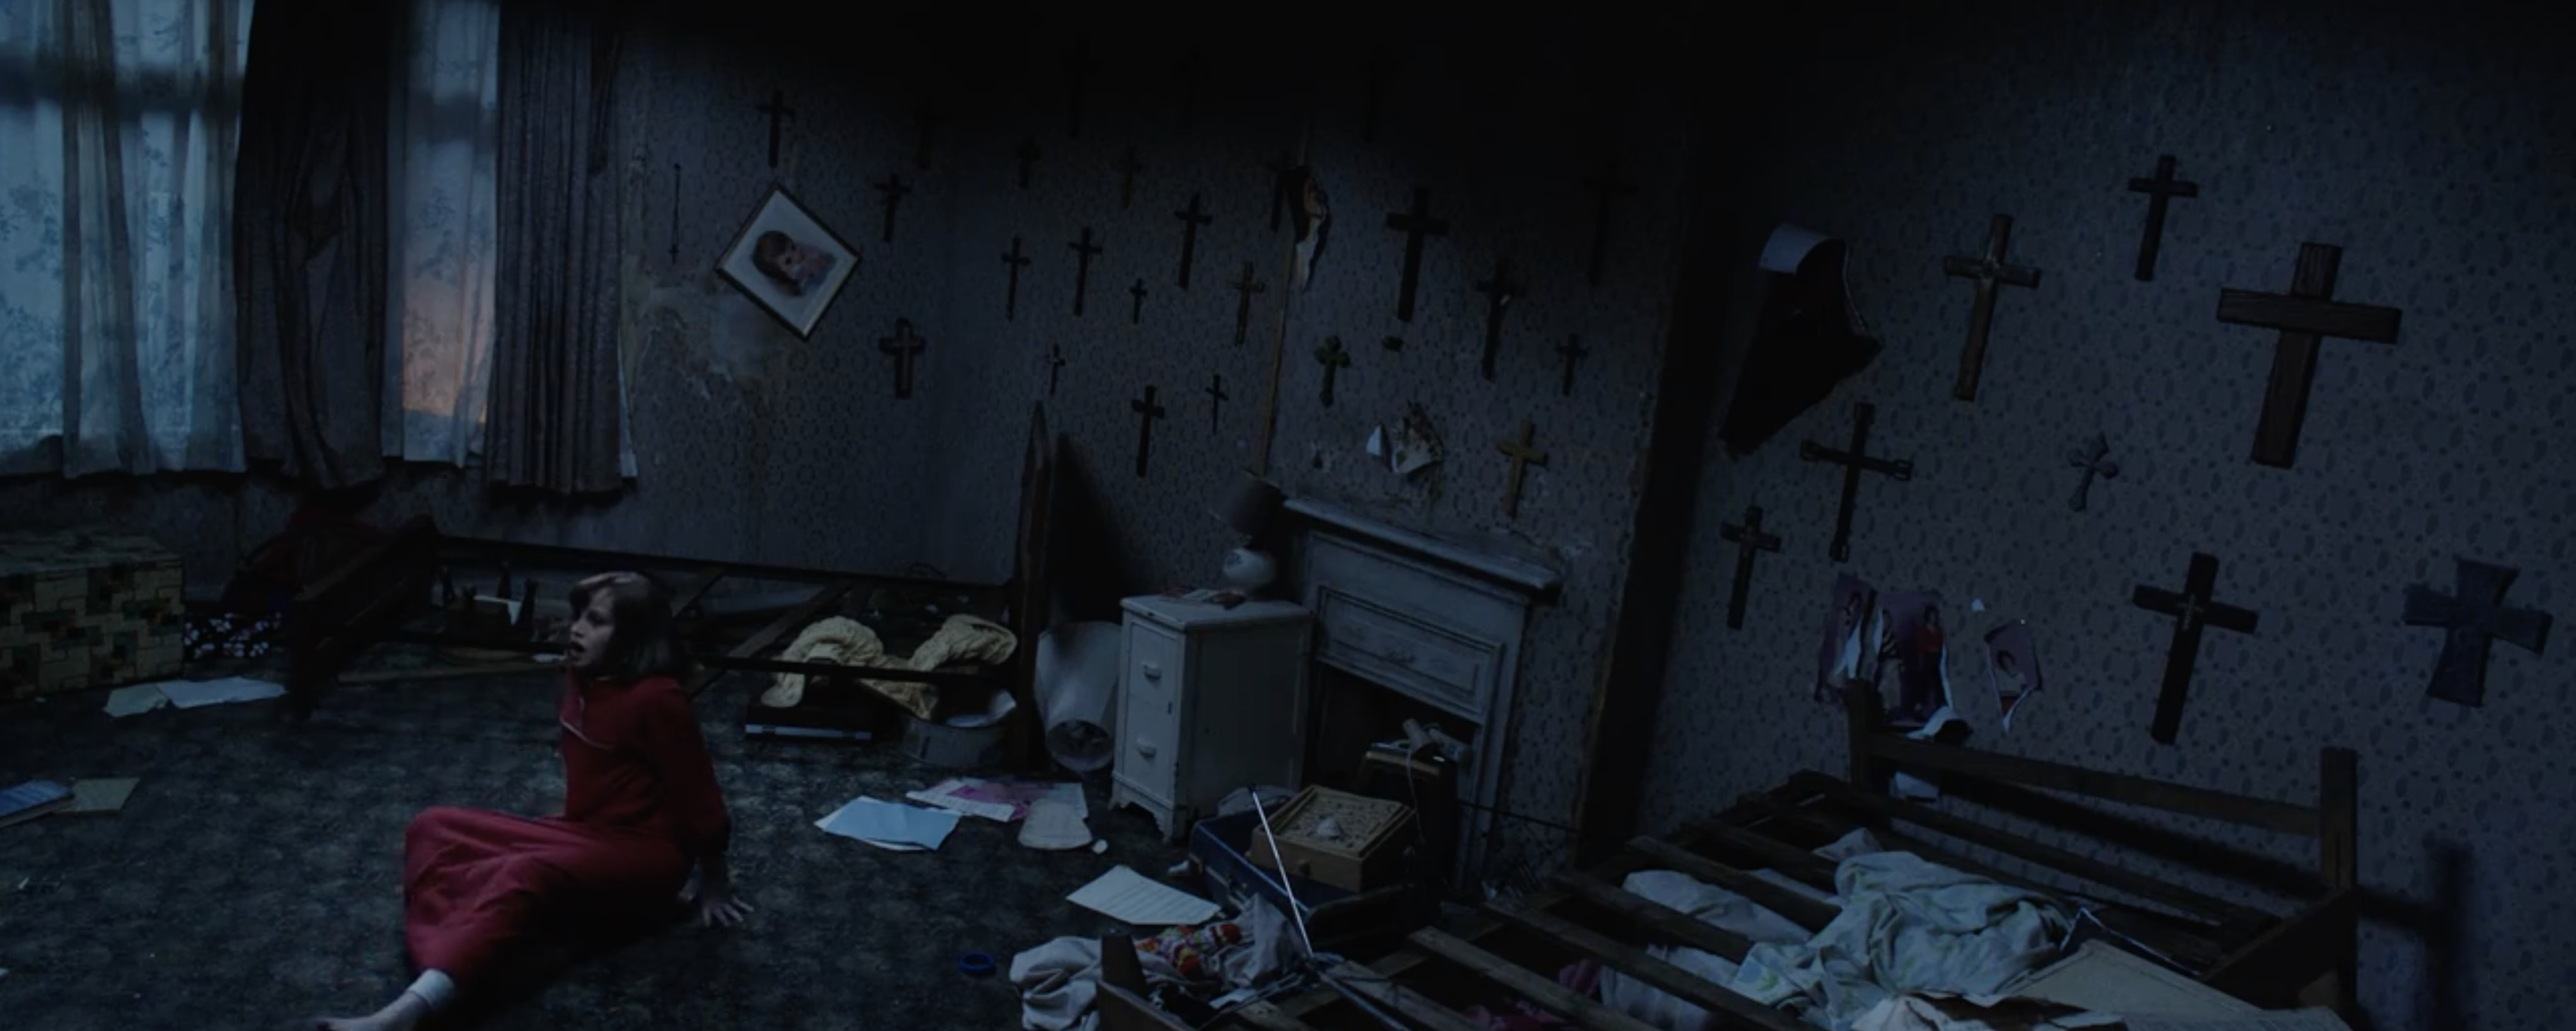 The Conjuring 2 Widescreen for desktop